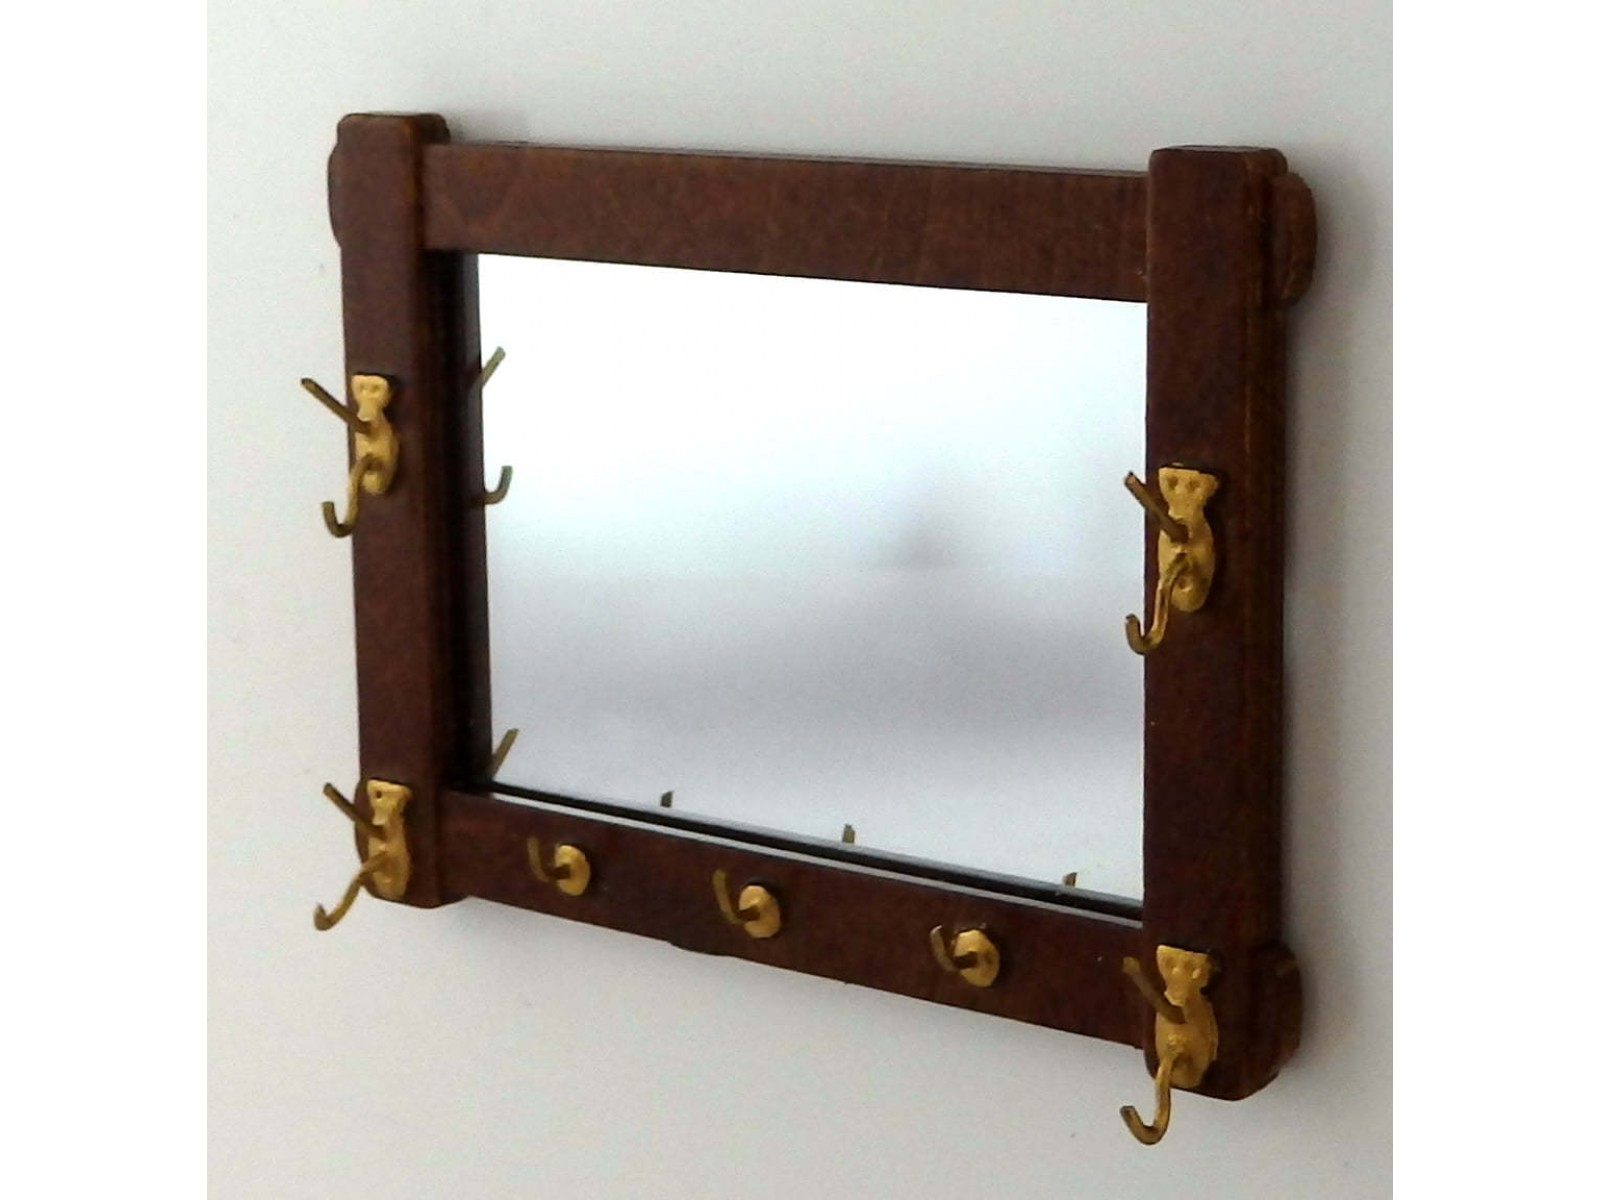 Wall Mirrors With Hooks Within Recent Dolls House Arts & Crafts Wall Mirror With Hooks Jbm Miniature Hall Accessory (View 19 of 20)